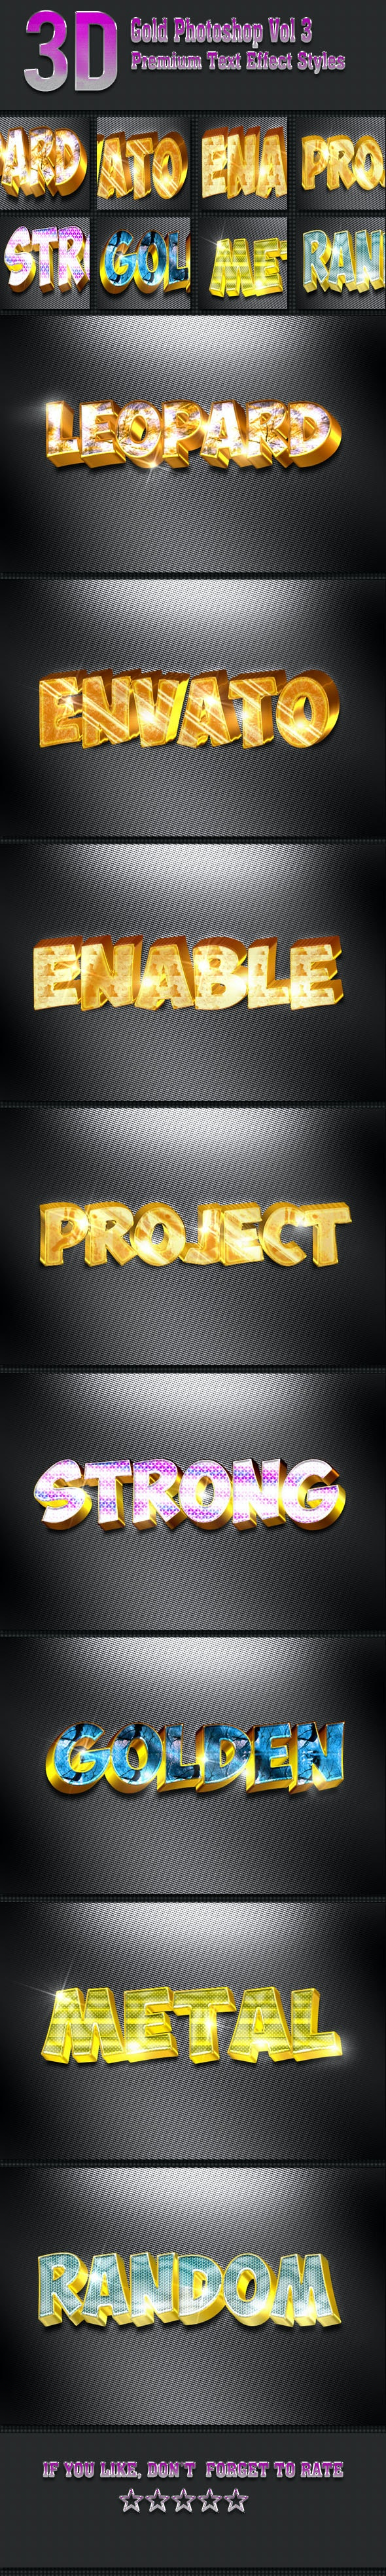 3D Gold Photoshop Vol 3 - Text Effects Styles